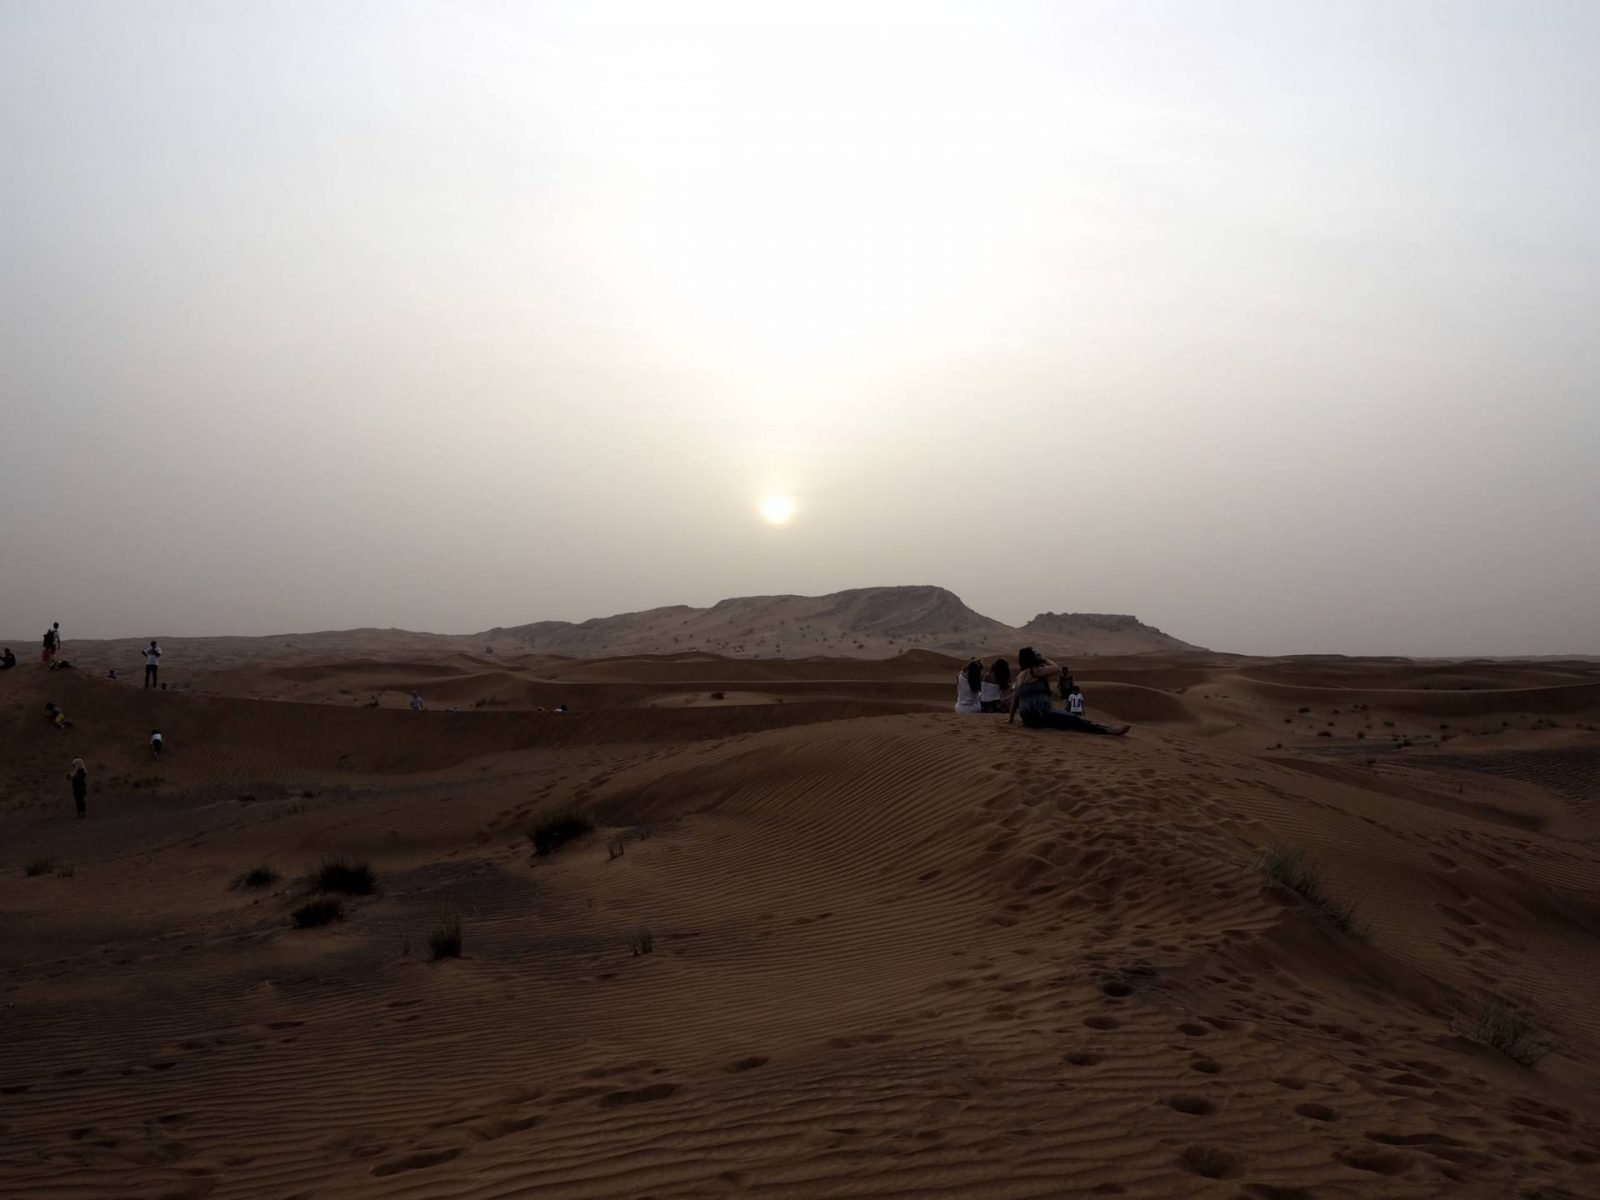 Sun sets over the Dubai desert